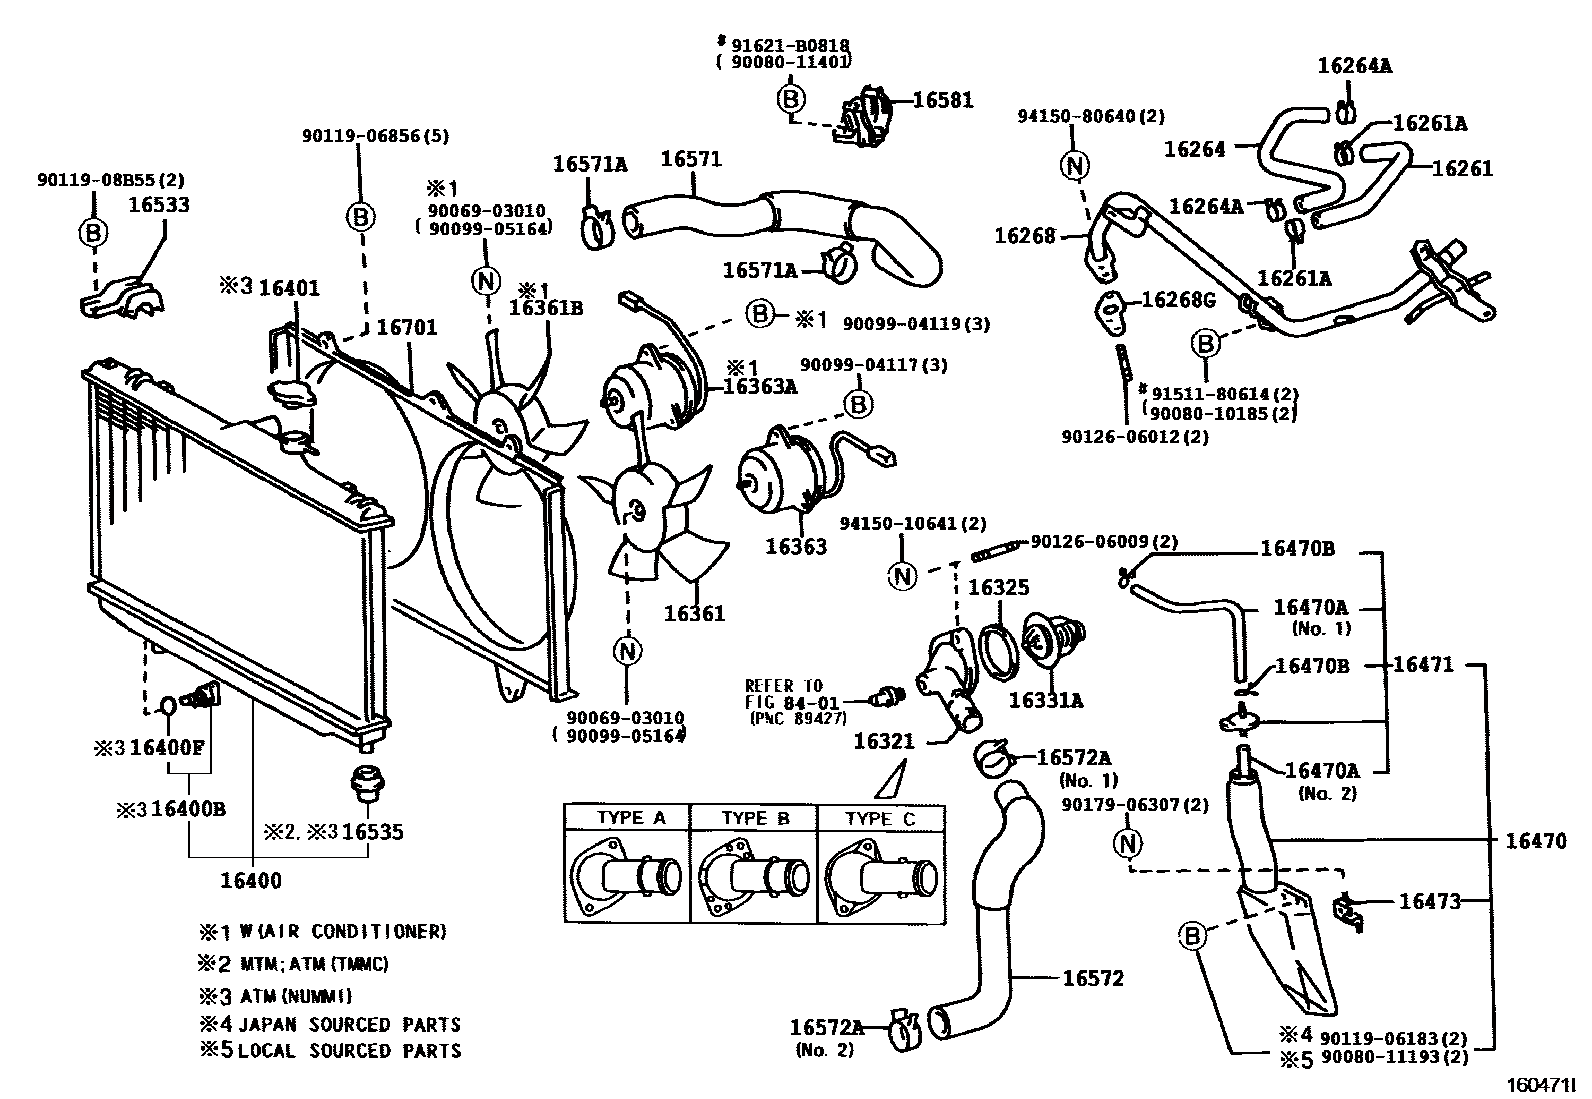 2013 toyota camry engine cooling system diagram images gallery [ 1592 x 1099 Pixel ]